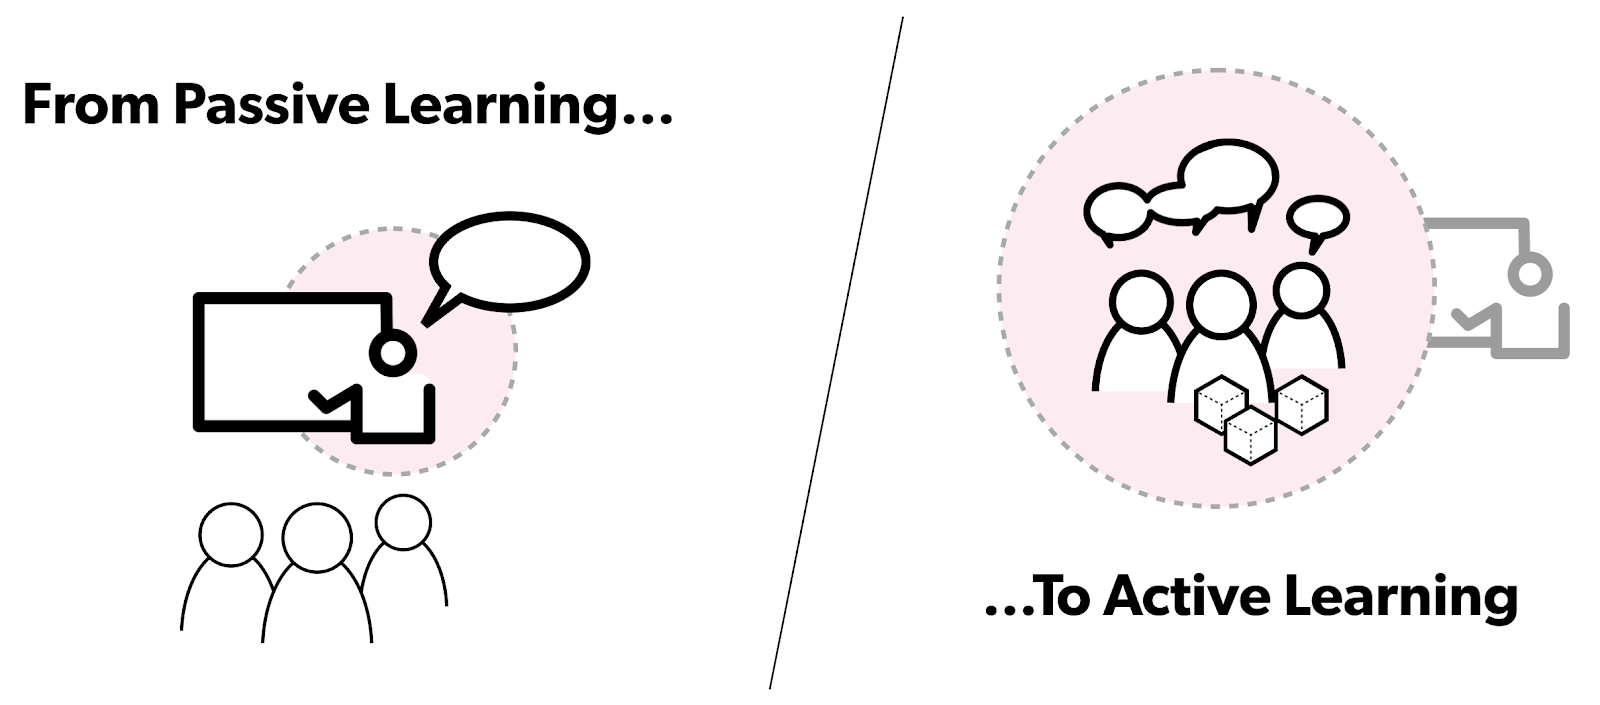 Passive vs Active learning in design leadership and education.